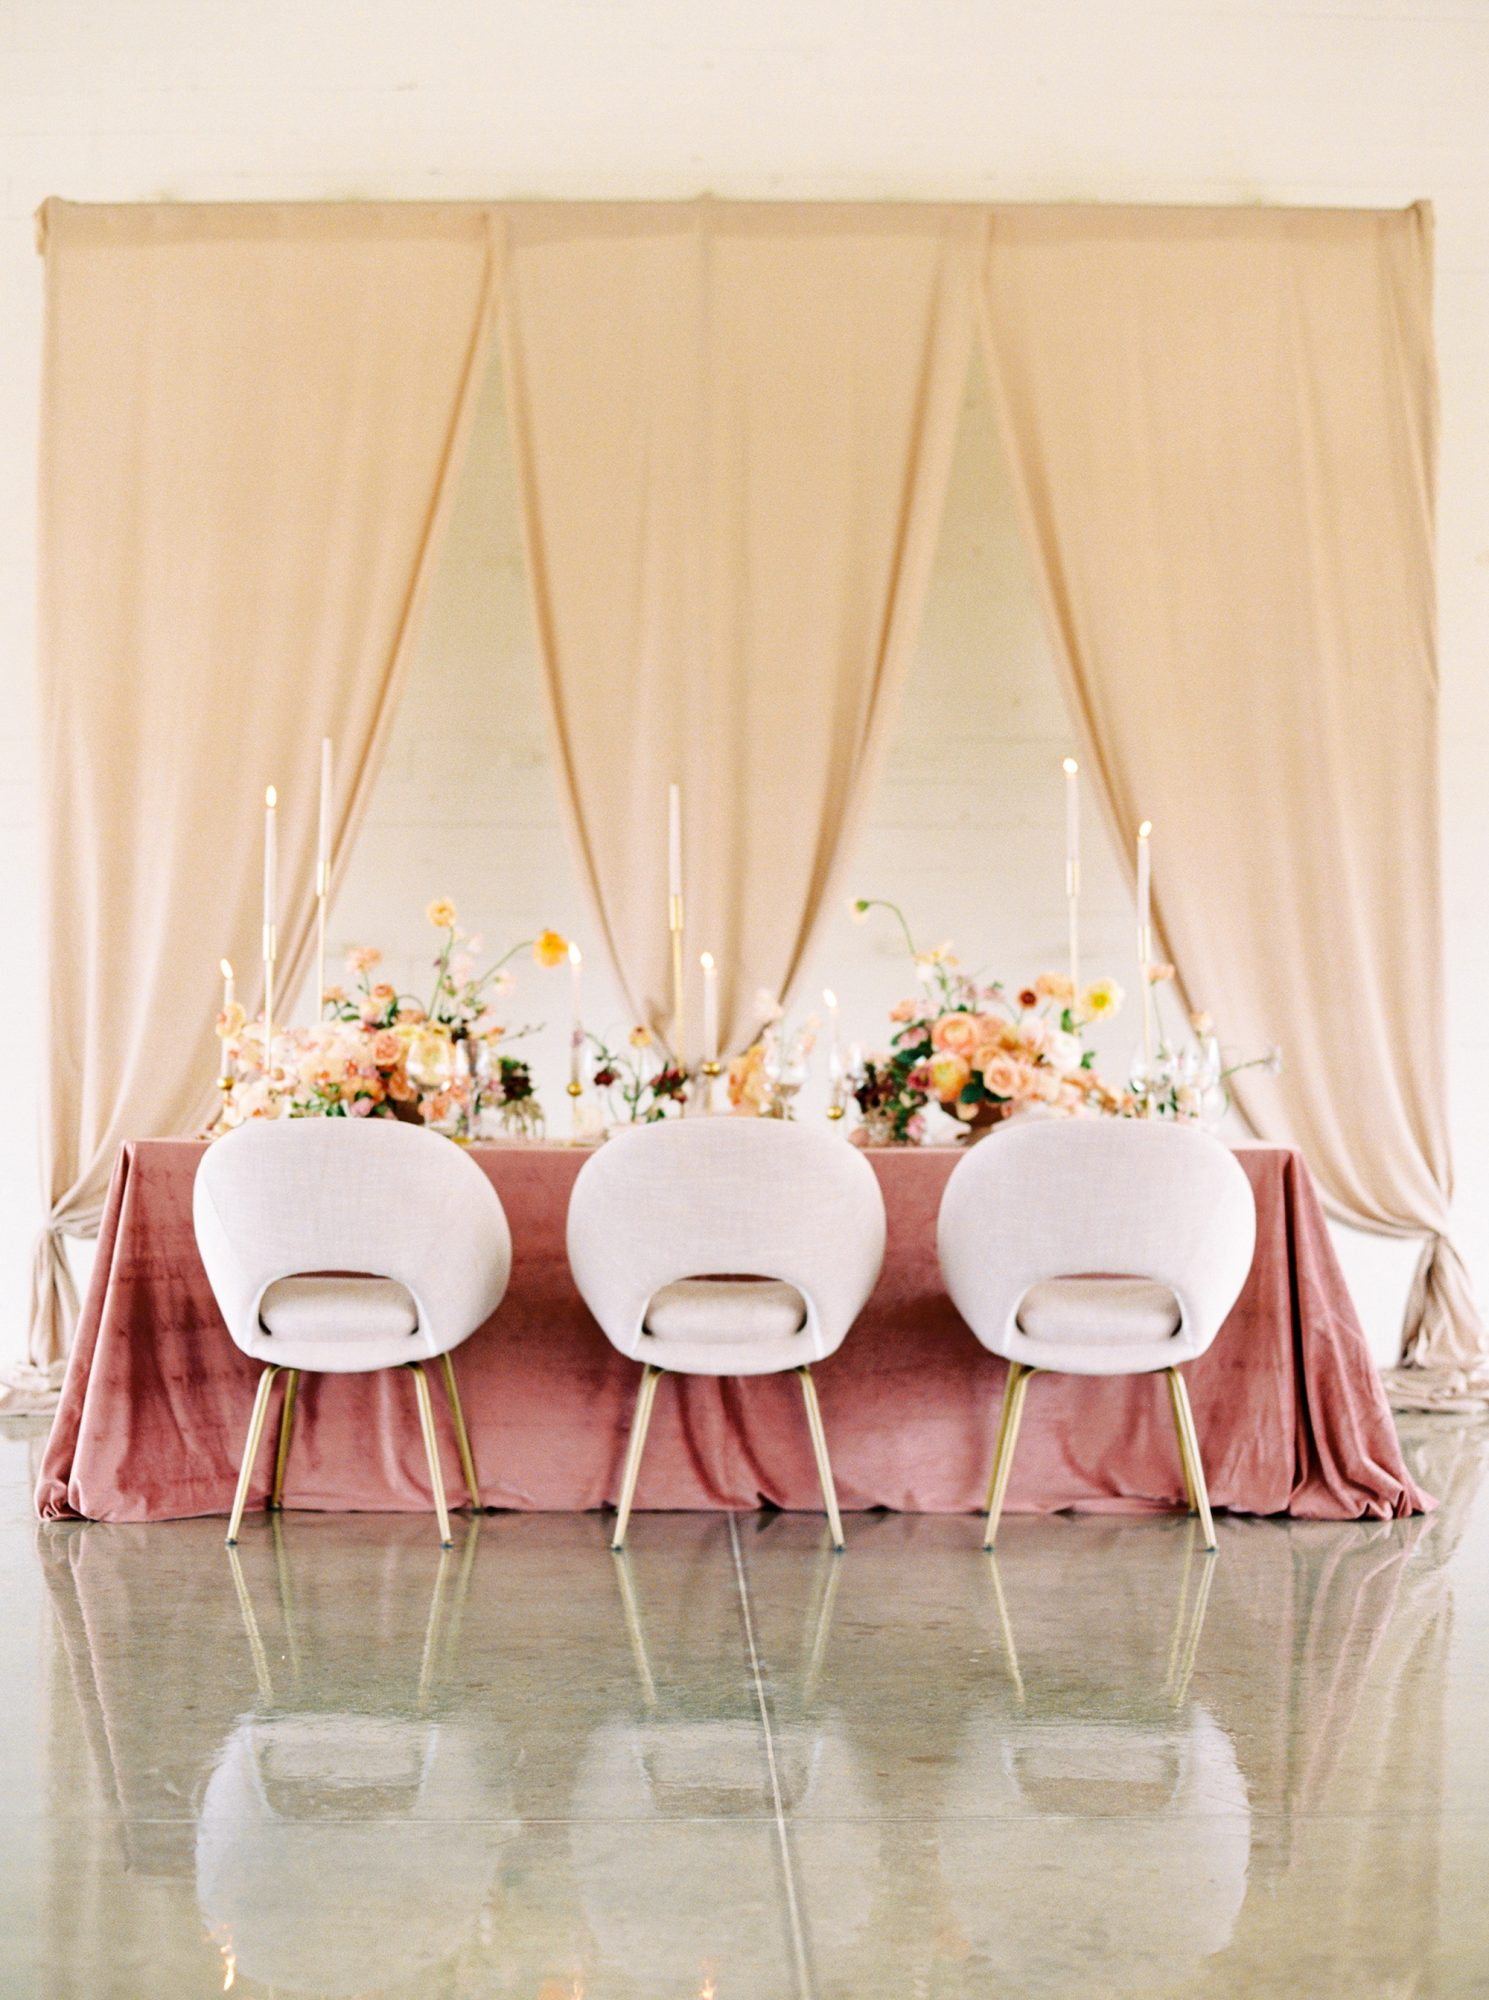 pink chairs with curved backs